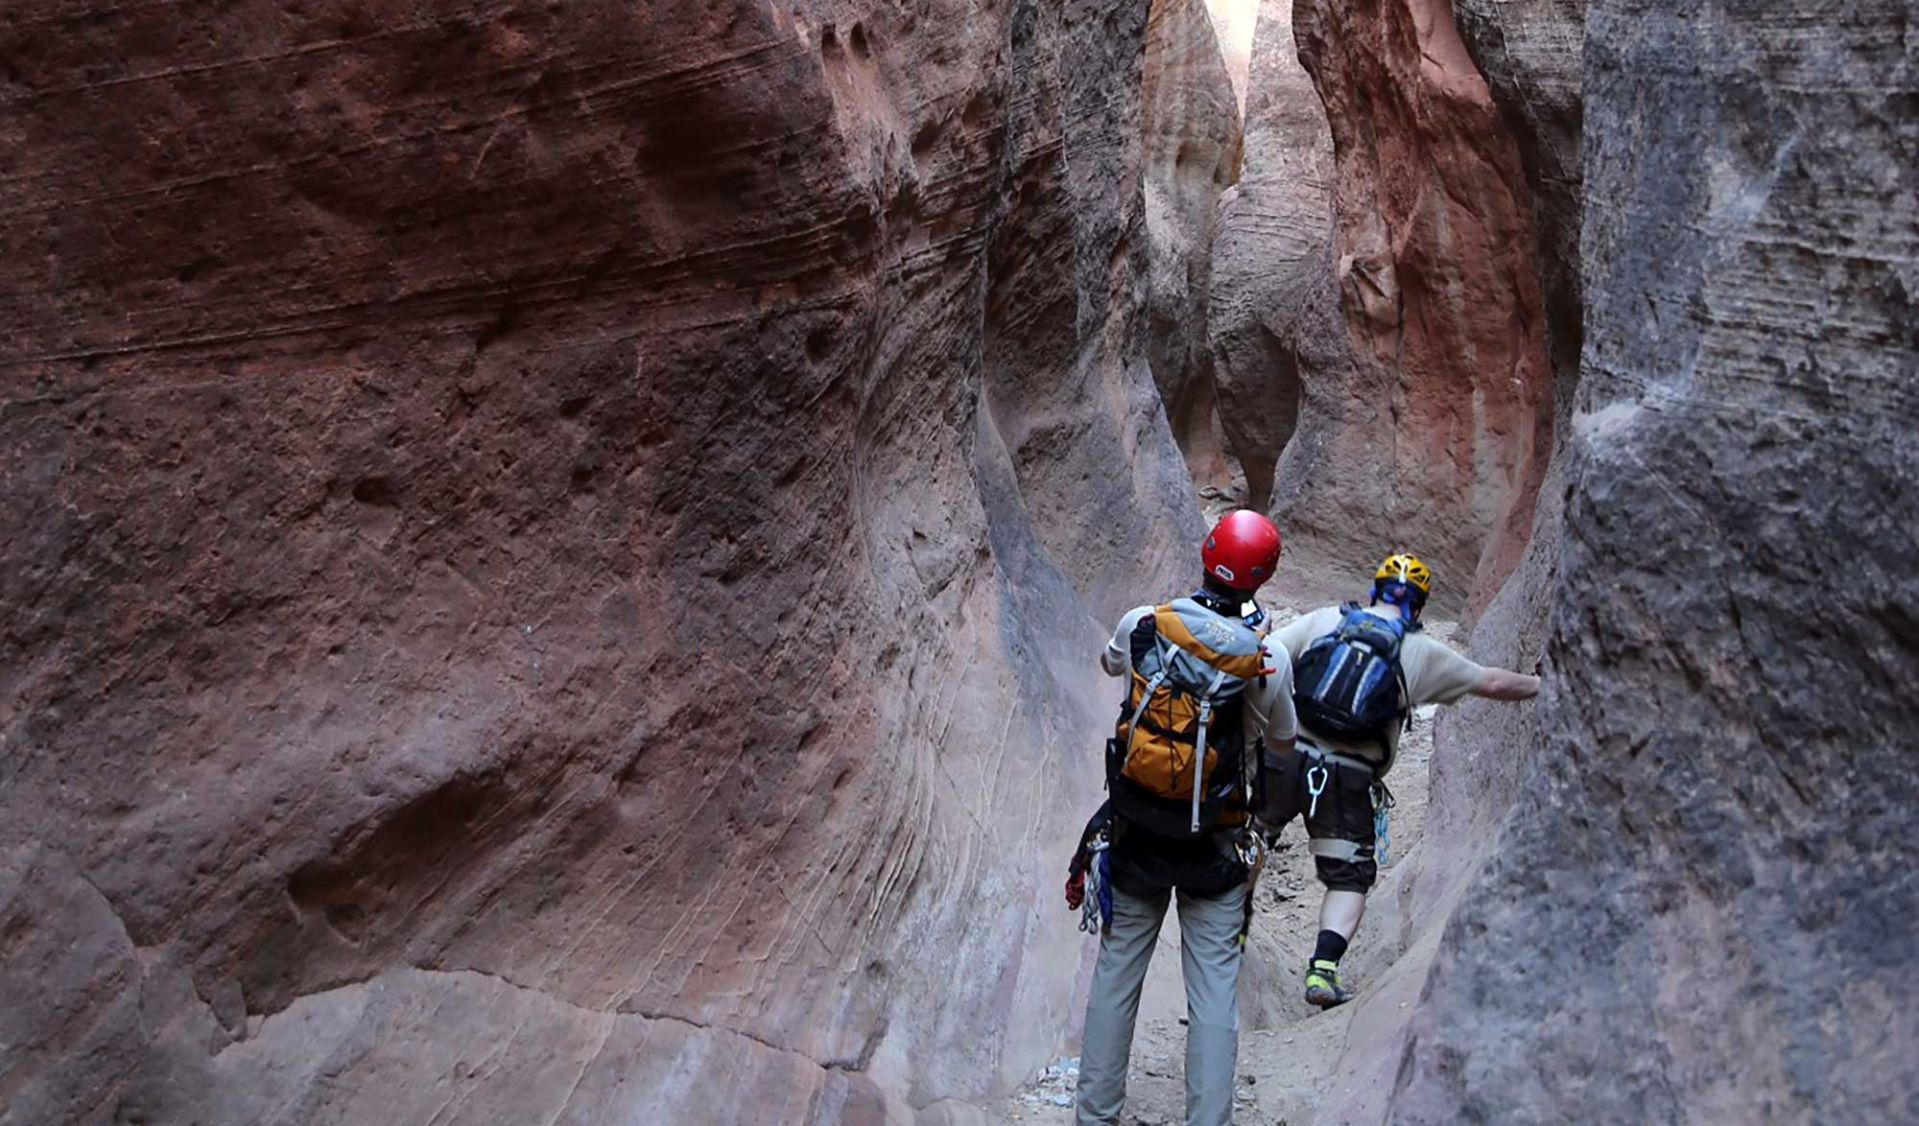 Technical Canyoneering